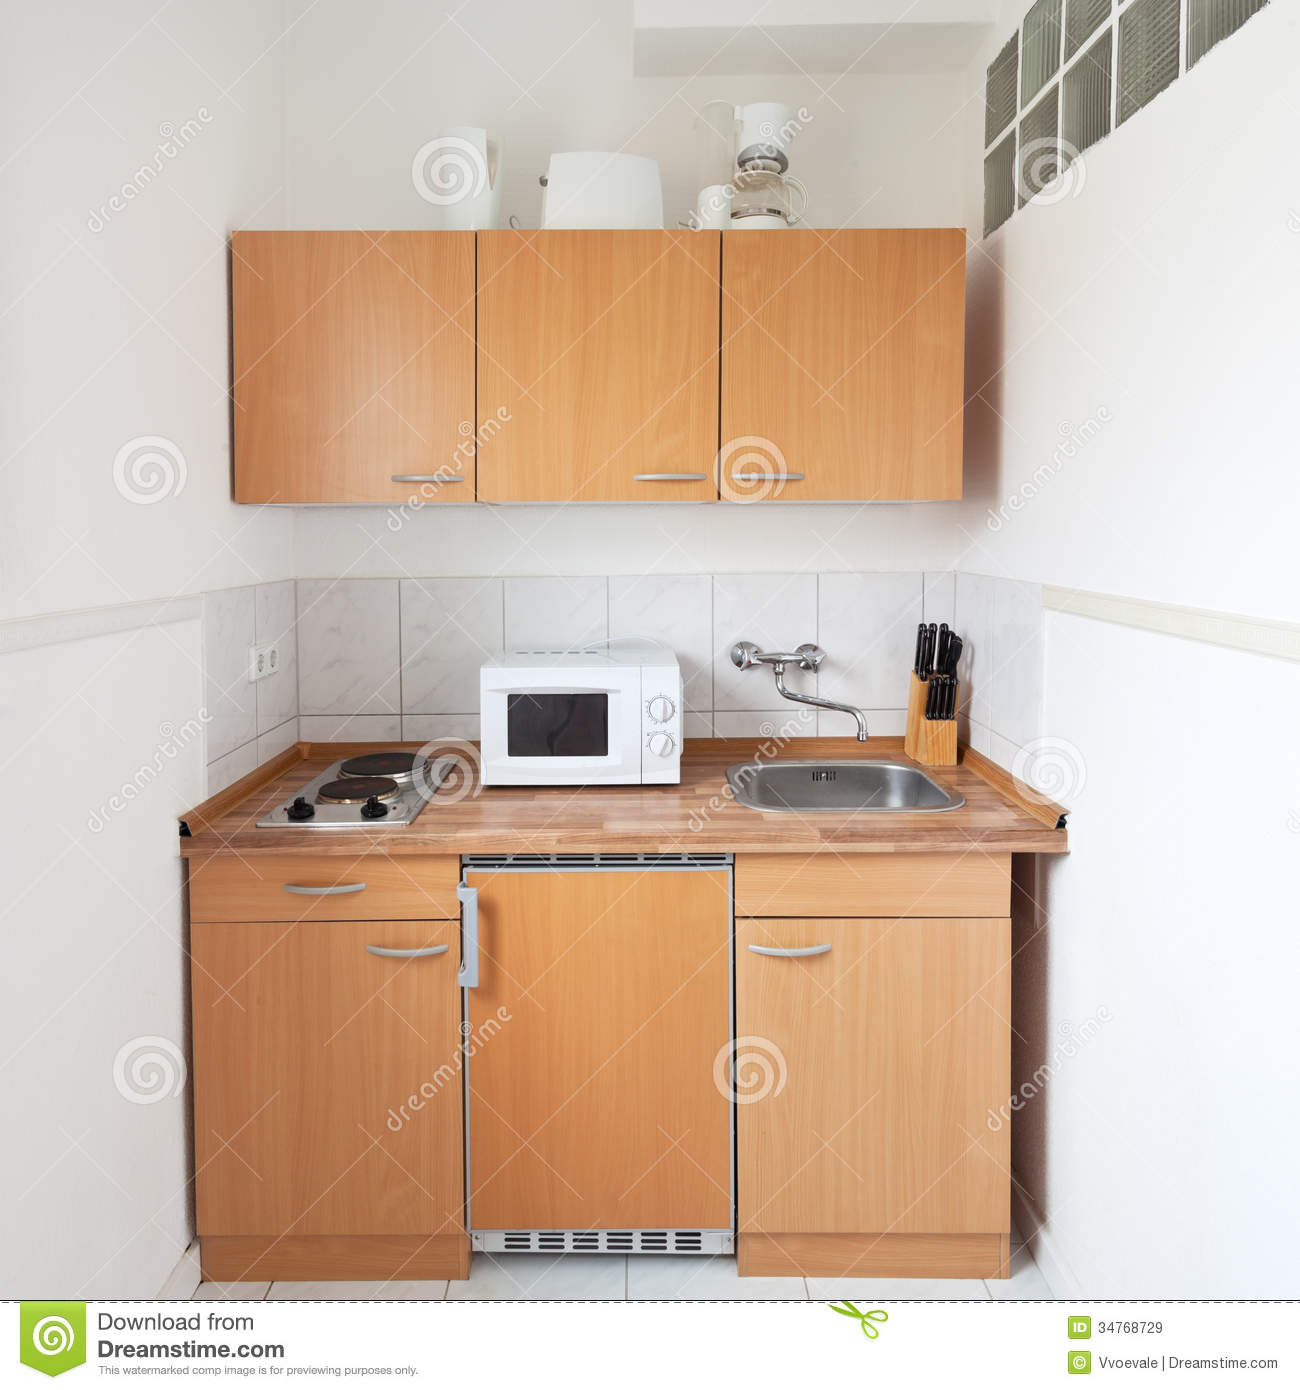 Simple kitchen with furniture set stock image image for Small kitchen cabinet set